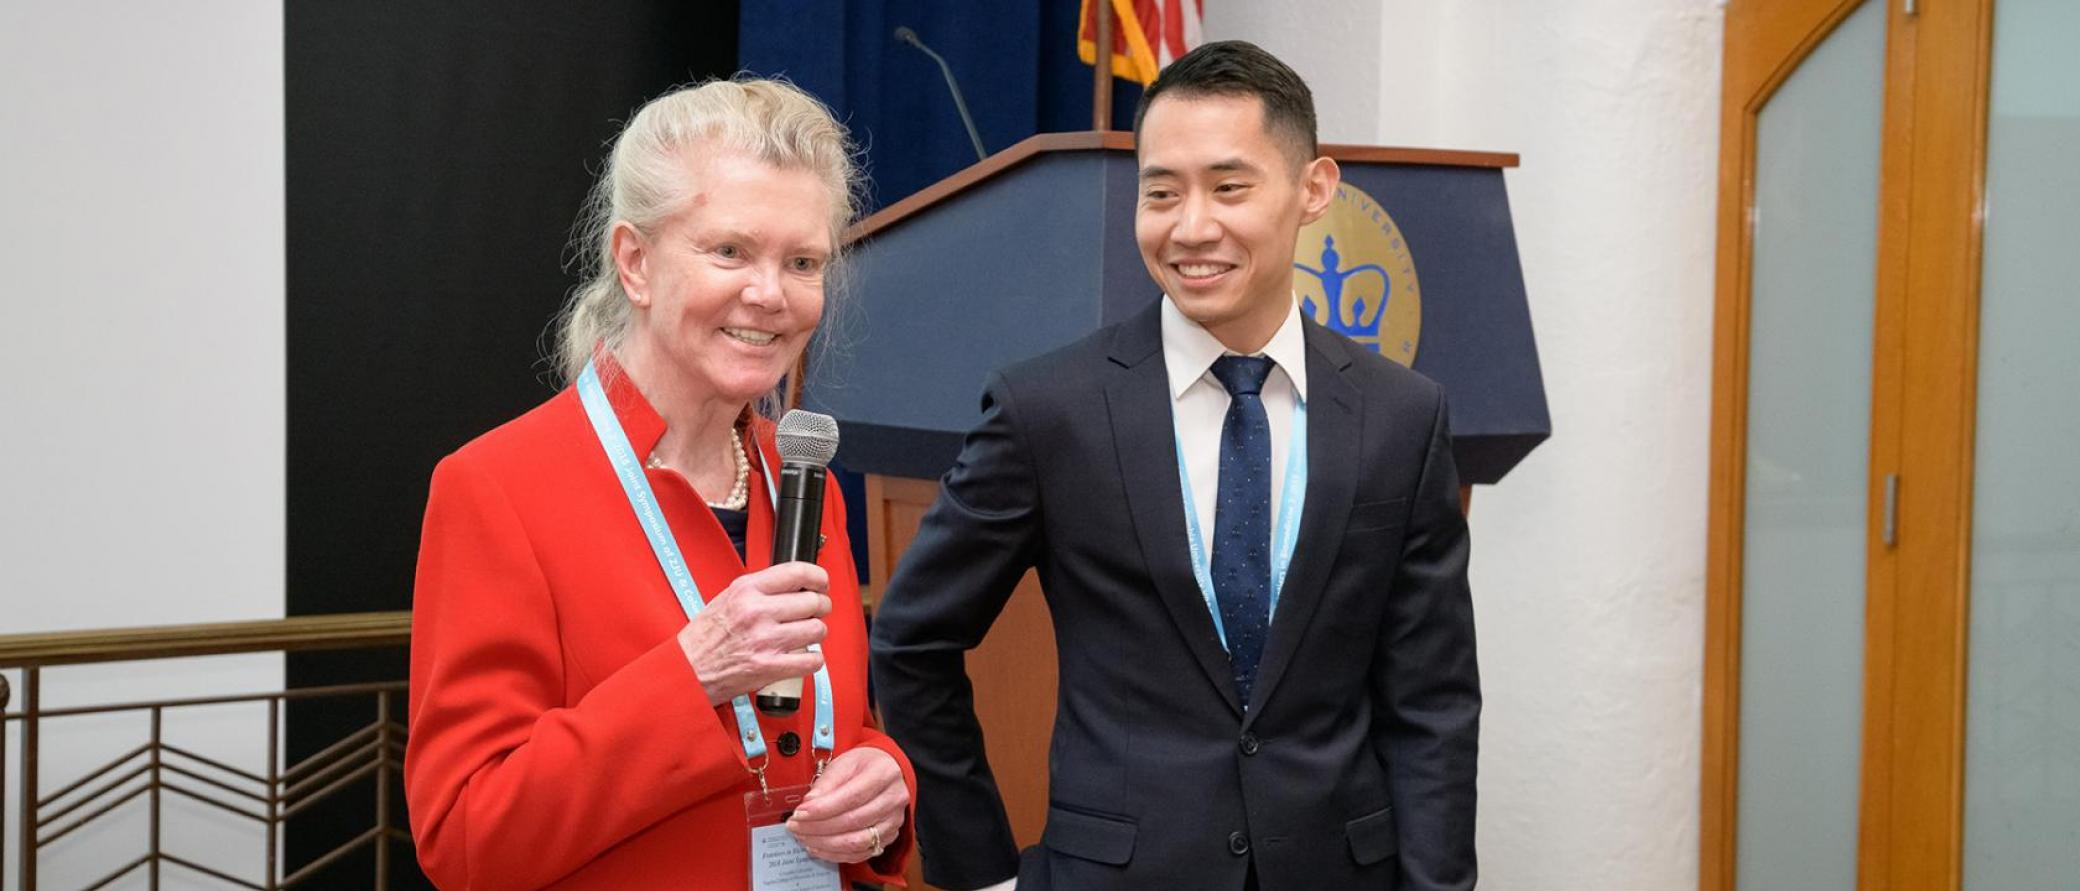 Anke Nolting, PhD, and Peter Liou, MD, spoke at the 2018 Symposium